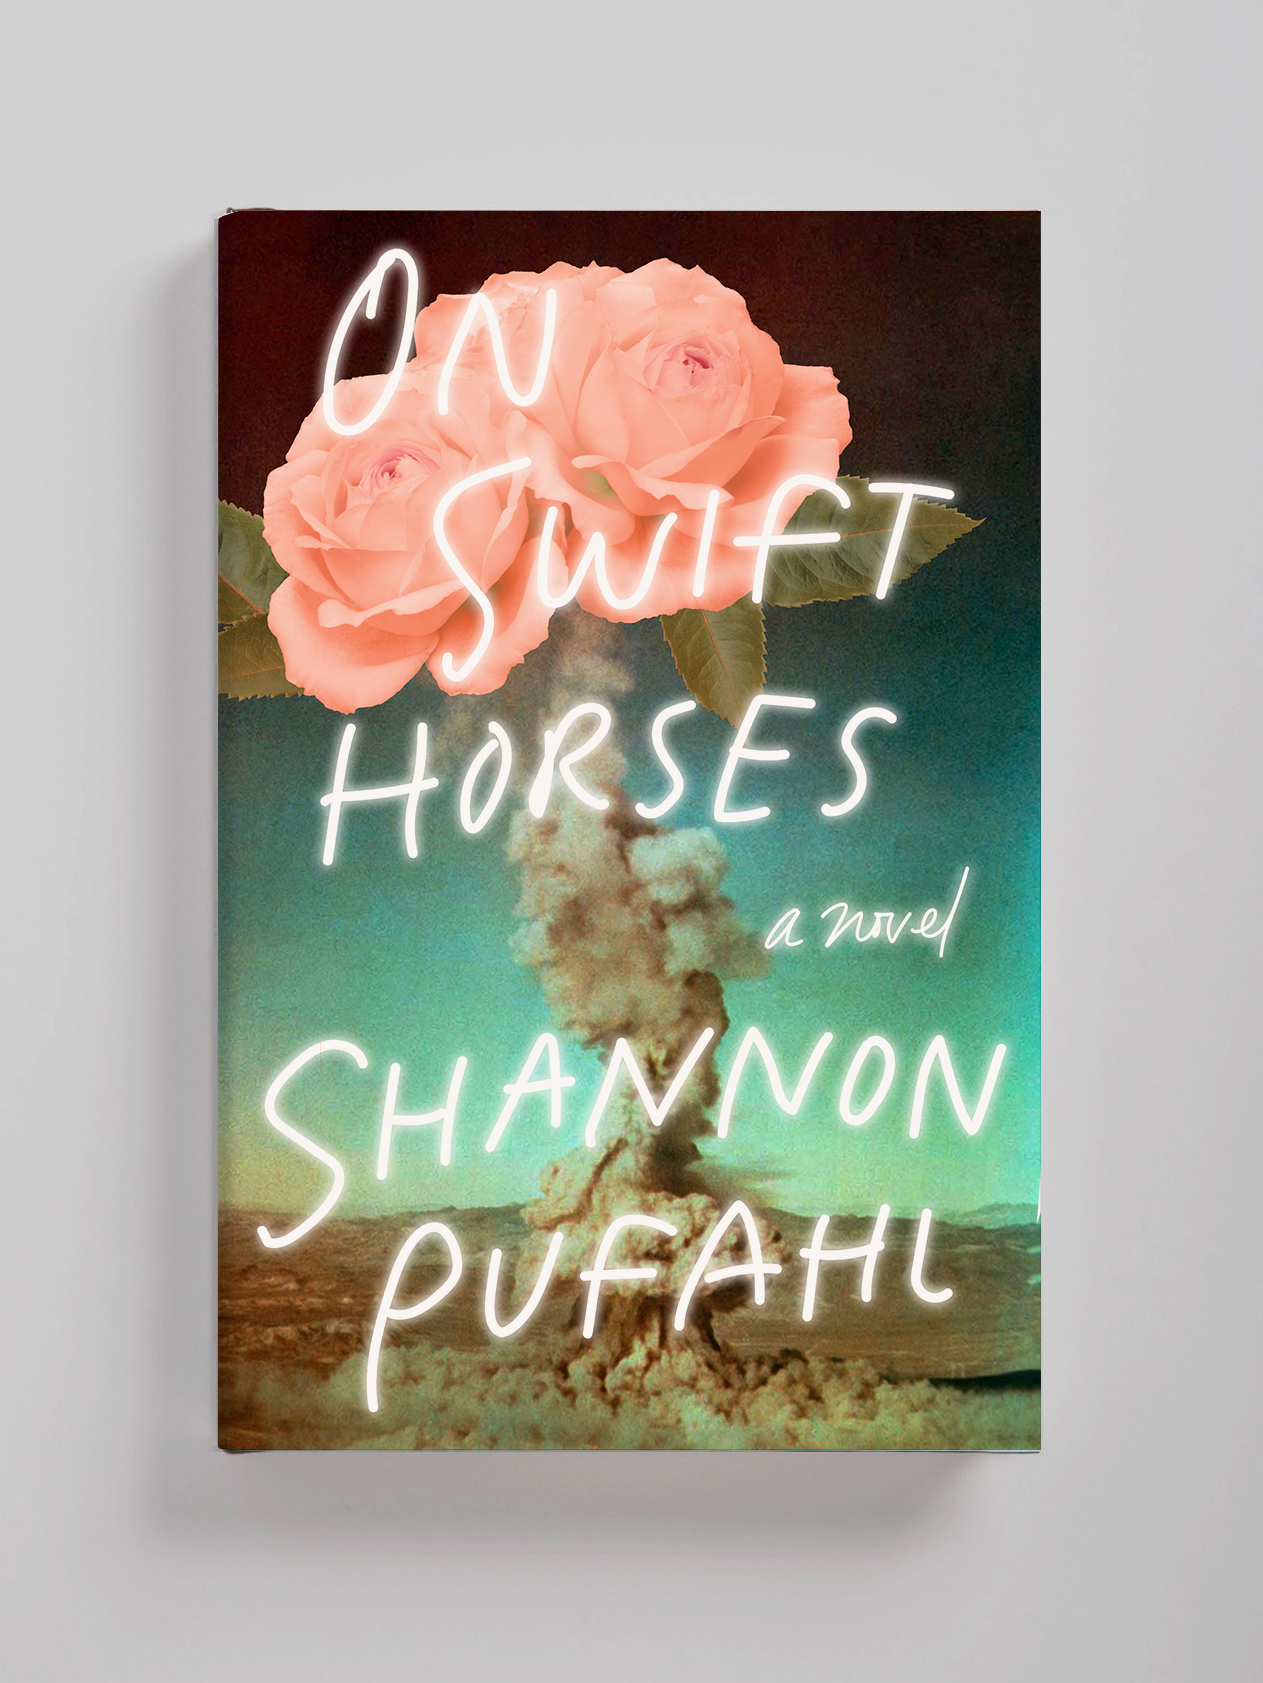 Lauren Peters-Collaer—On Swift Horses